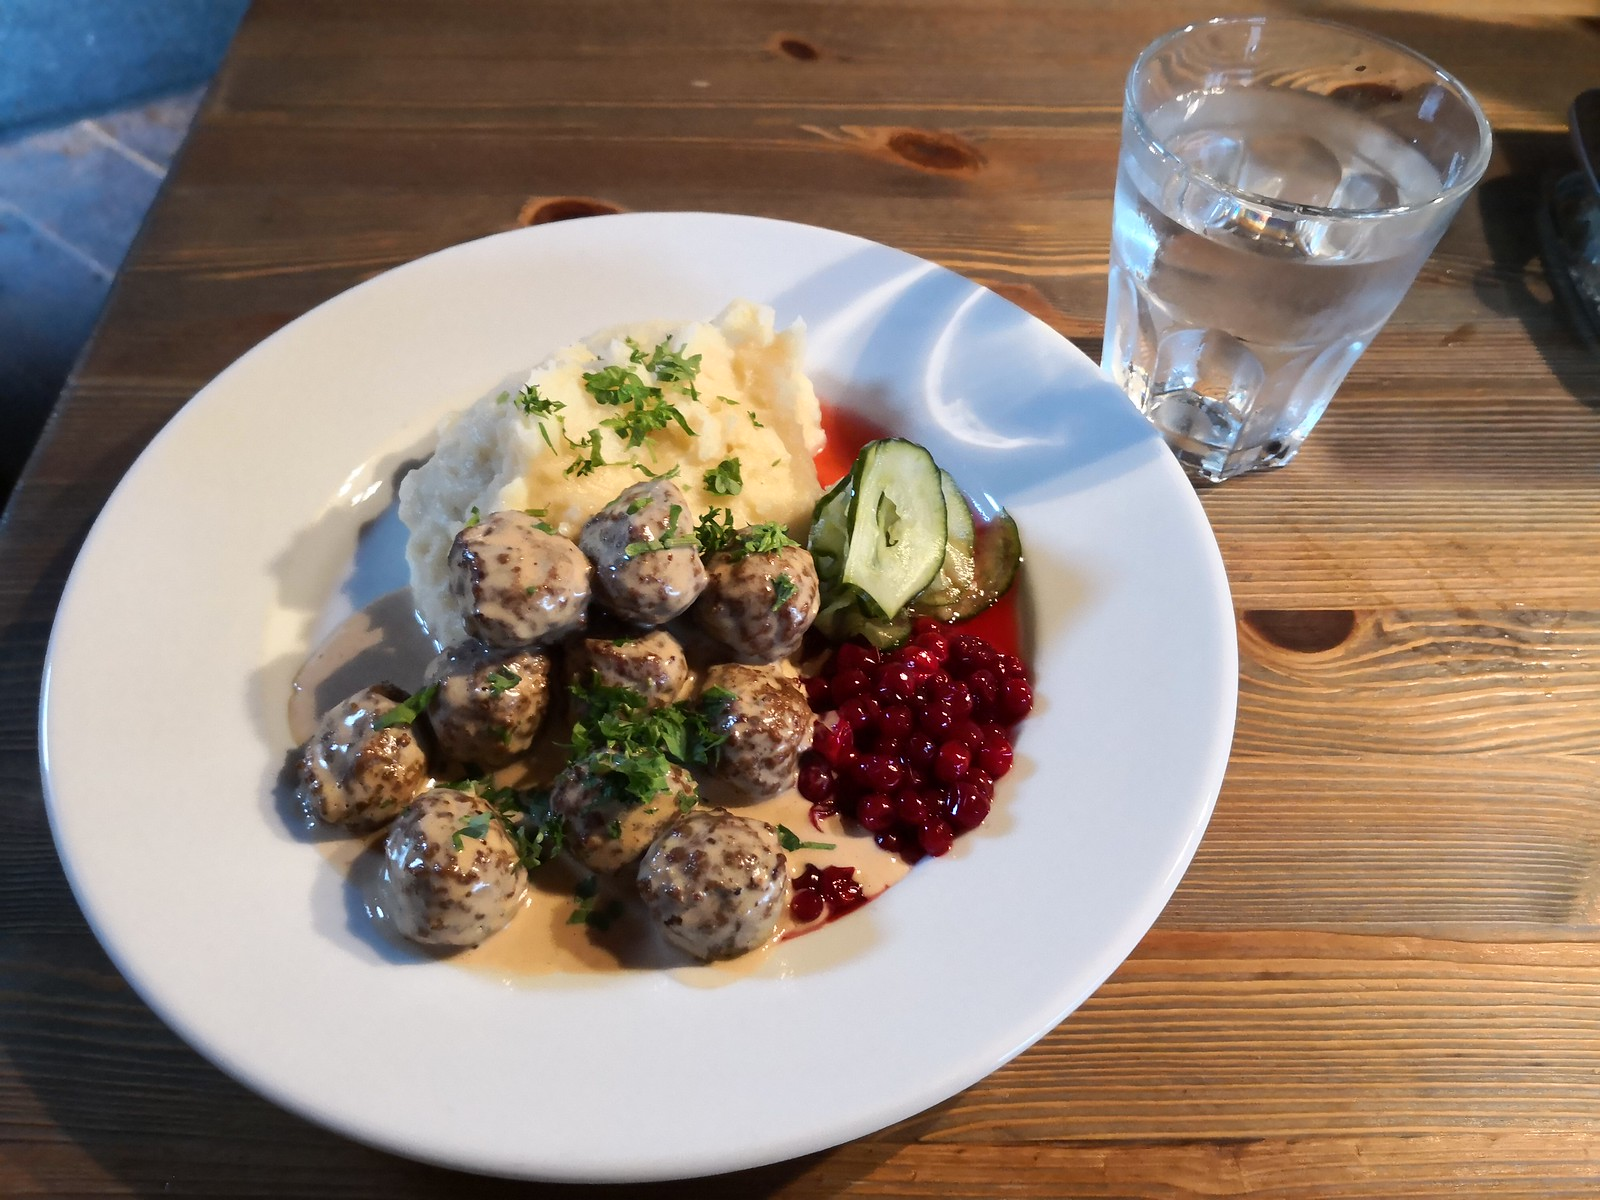 Meatballs for lunch